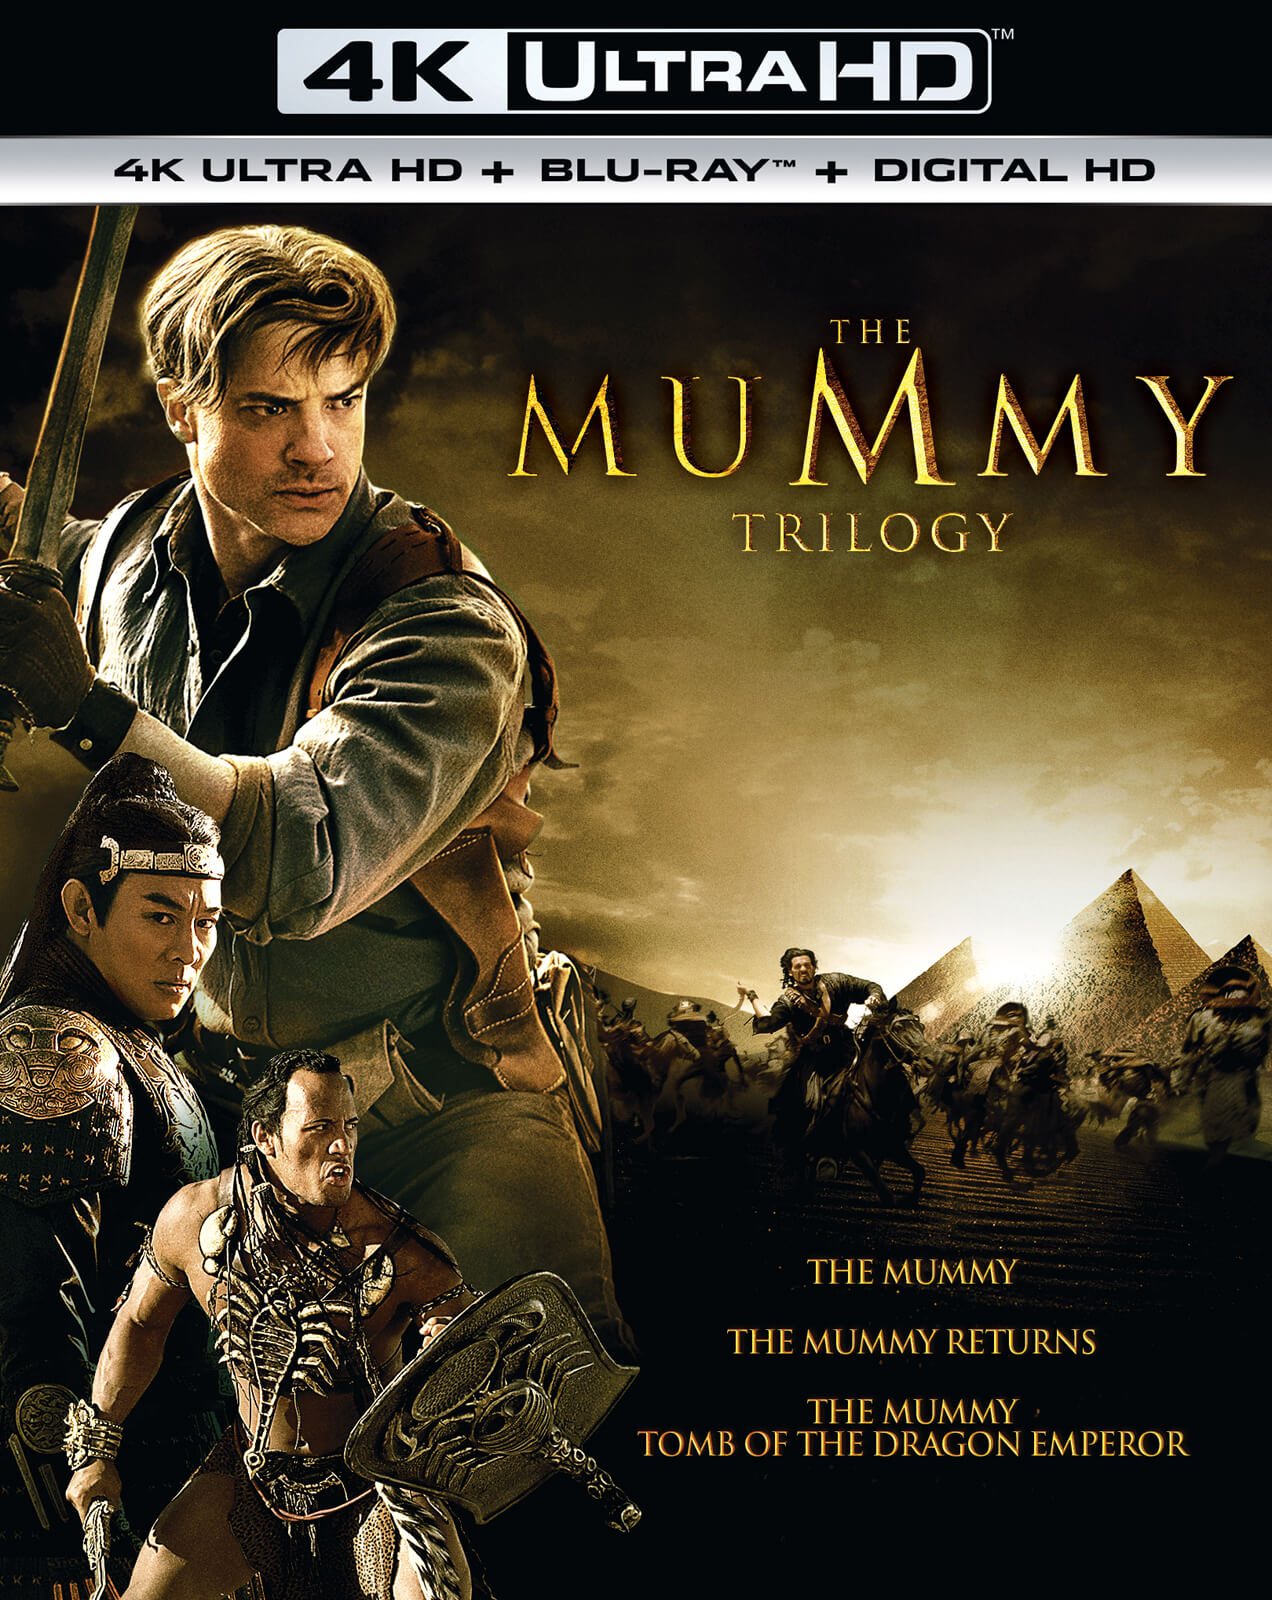 The Mummy Trilogy - 4K Ultra HD